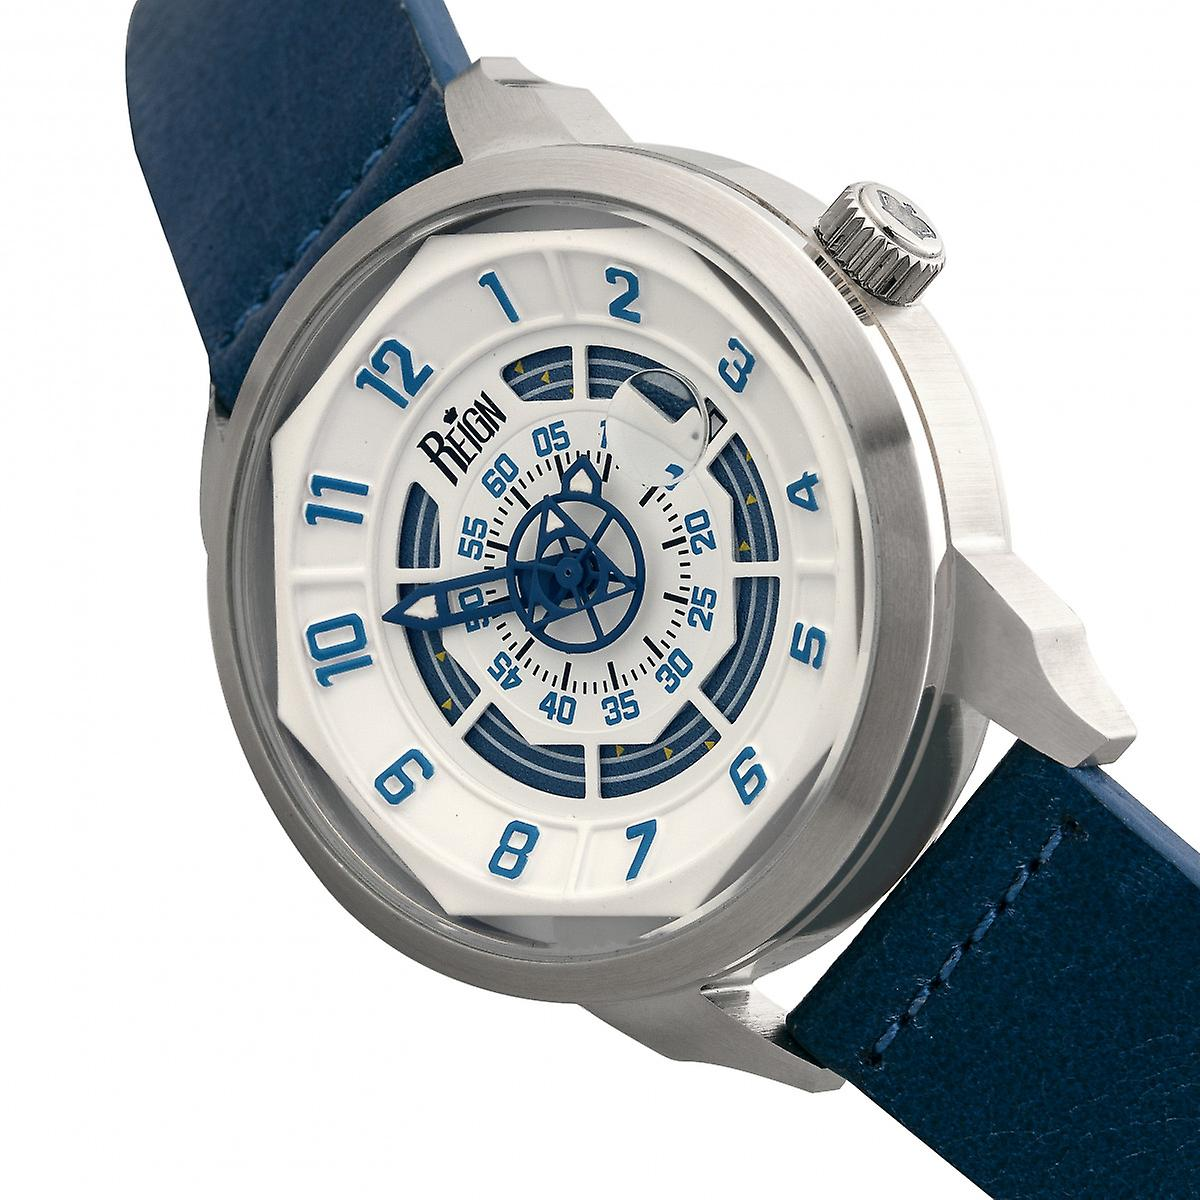 Reign Lafleur Automatic Leather-Band Watch w/Date - Silver/Blue